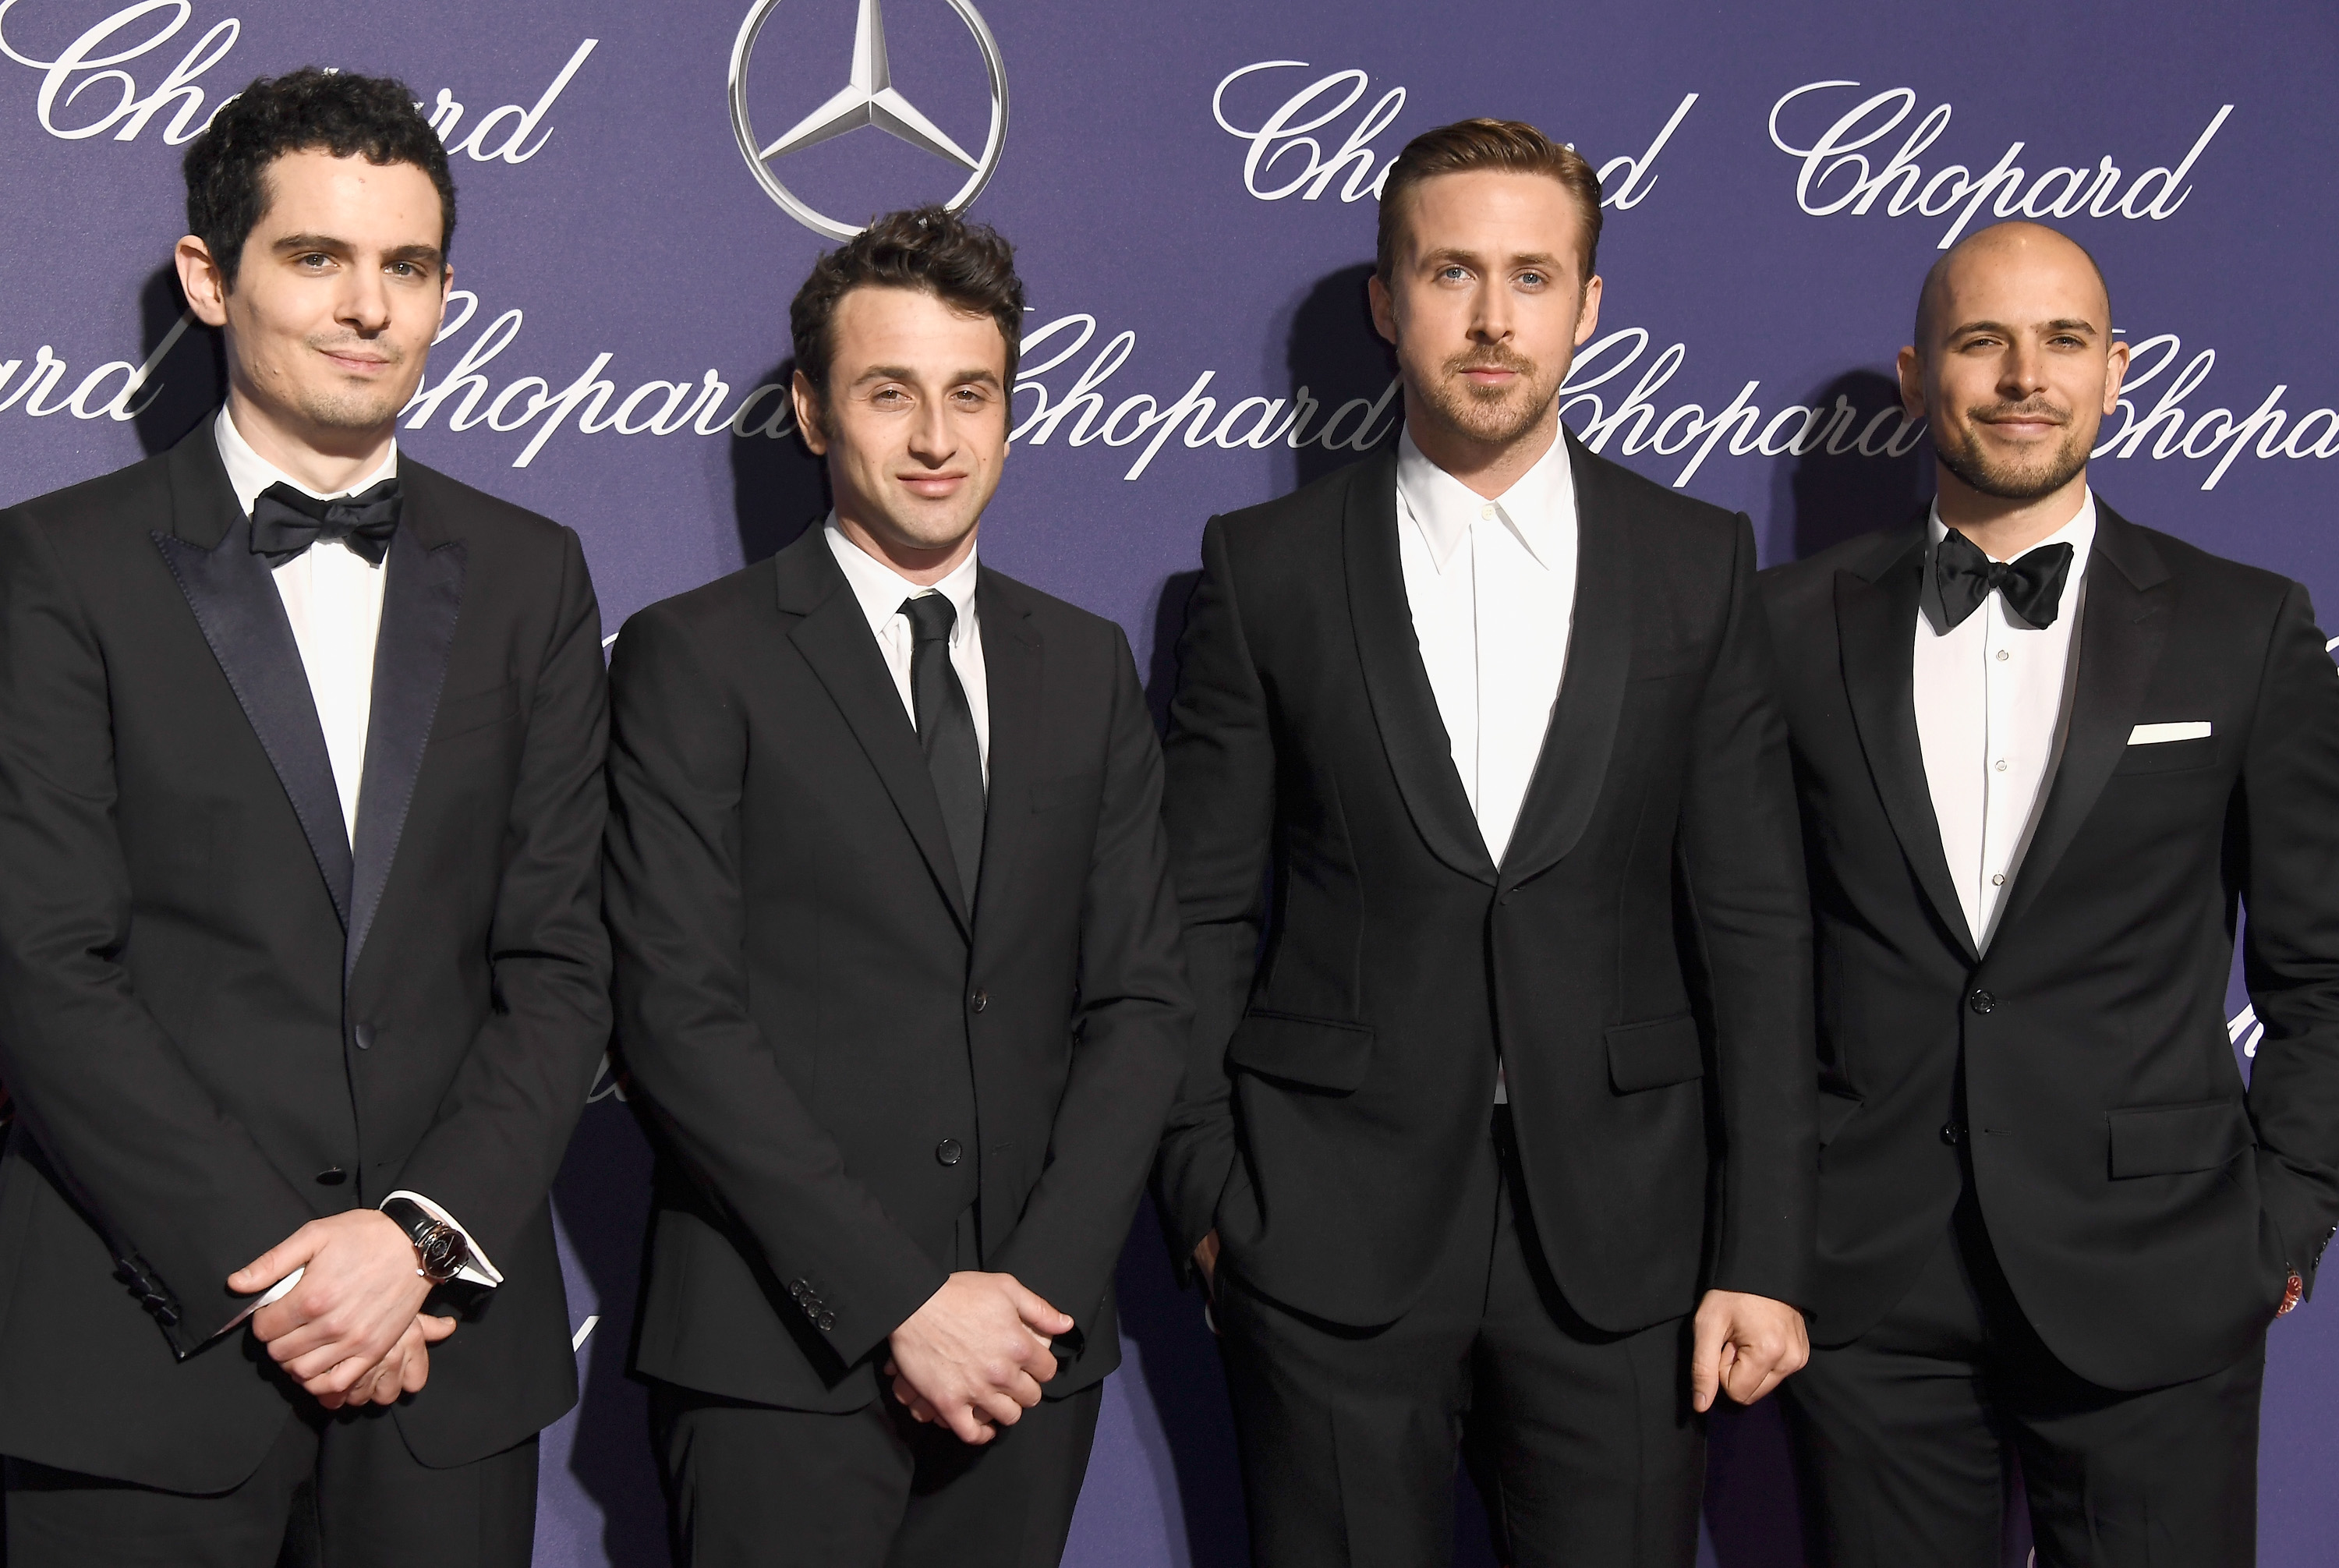 PALM SPRINGS, CA - JANUARY 02: Damien Chazelle, Justin Hurwitz, Ryan Gosling and Fred Berger attend the 28th Annual Palm Springs International Film Festival Film Awards Gala at the Palm Springs Convention Center on January 2, 2017 in Palm Springs, California. (Photo by Frazer Harrison/Getty Images )